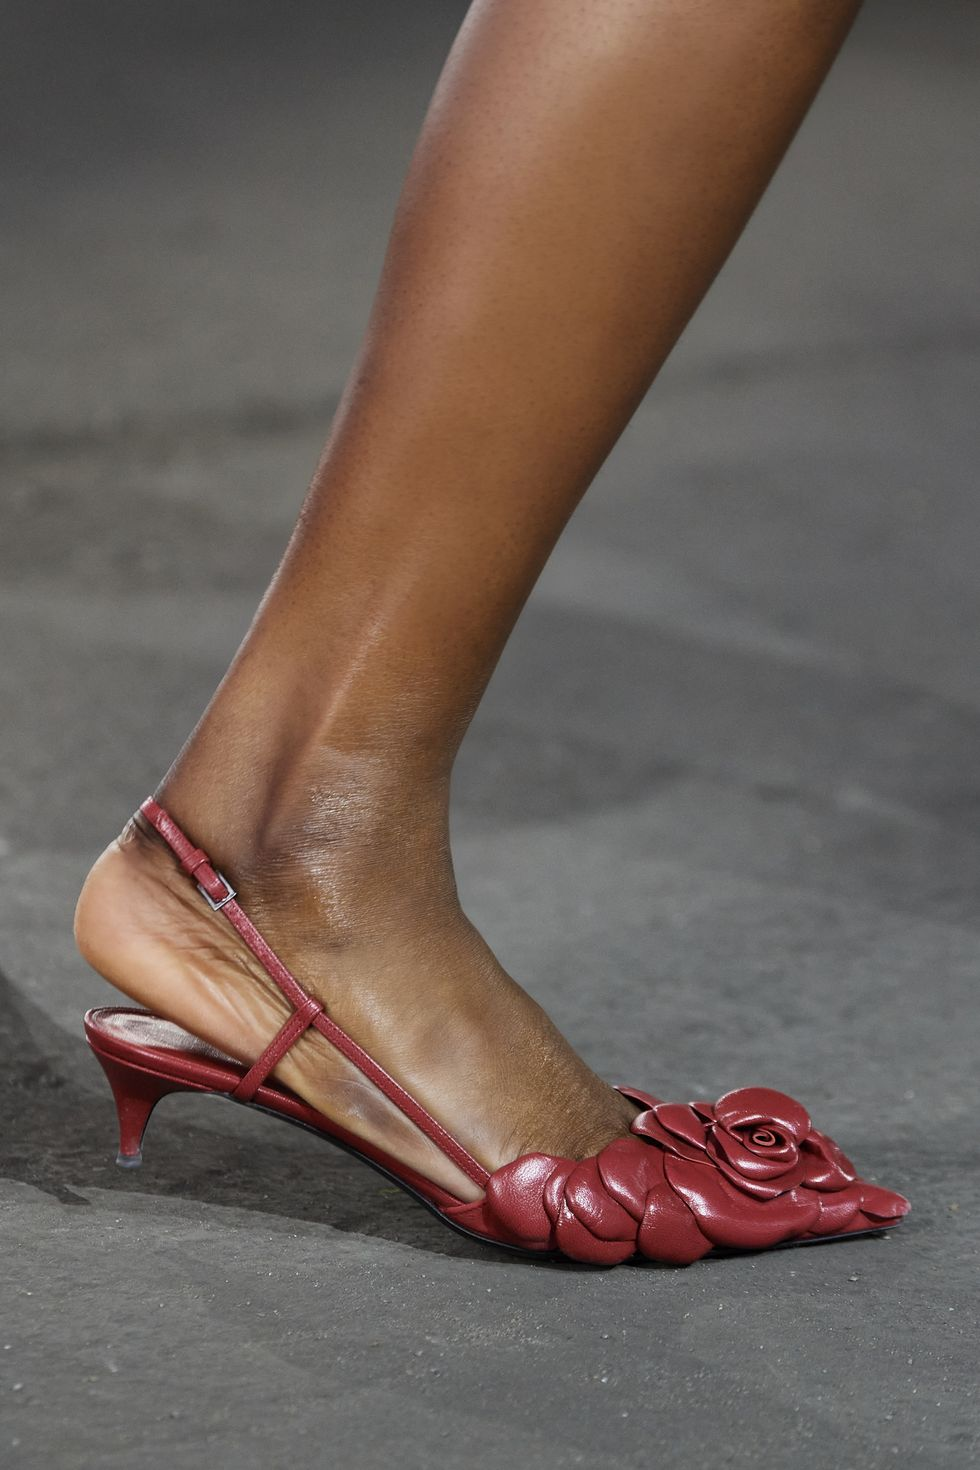 Baby-heels..-1 60+ Hottest Shoe Fashion Trends in 2021